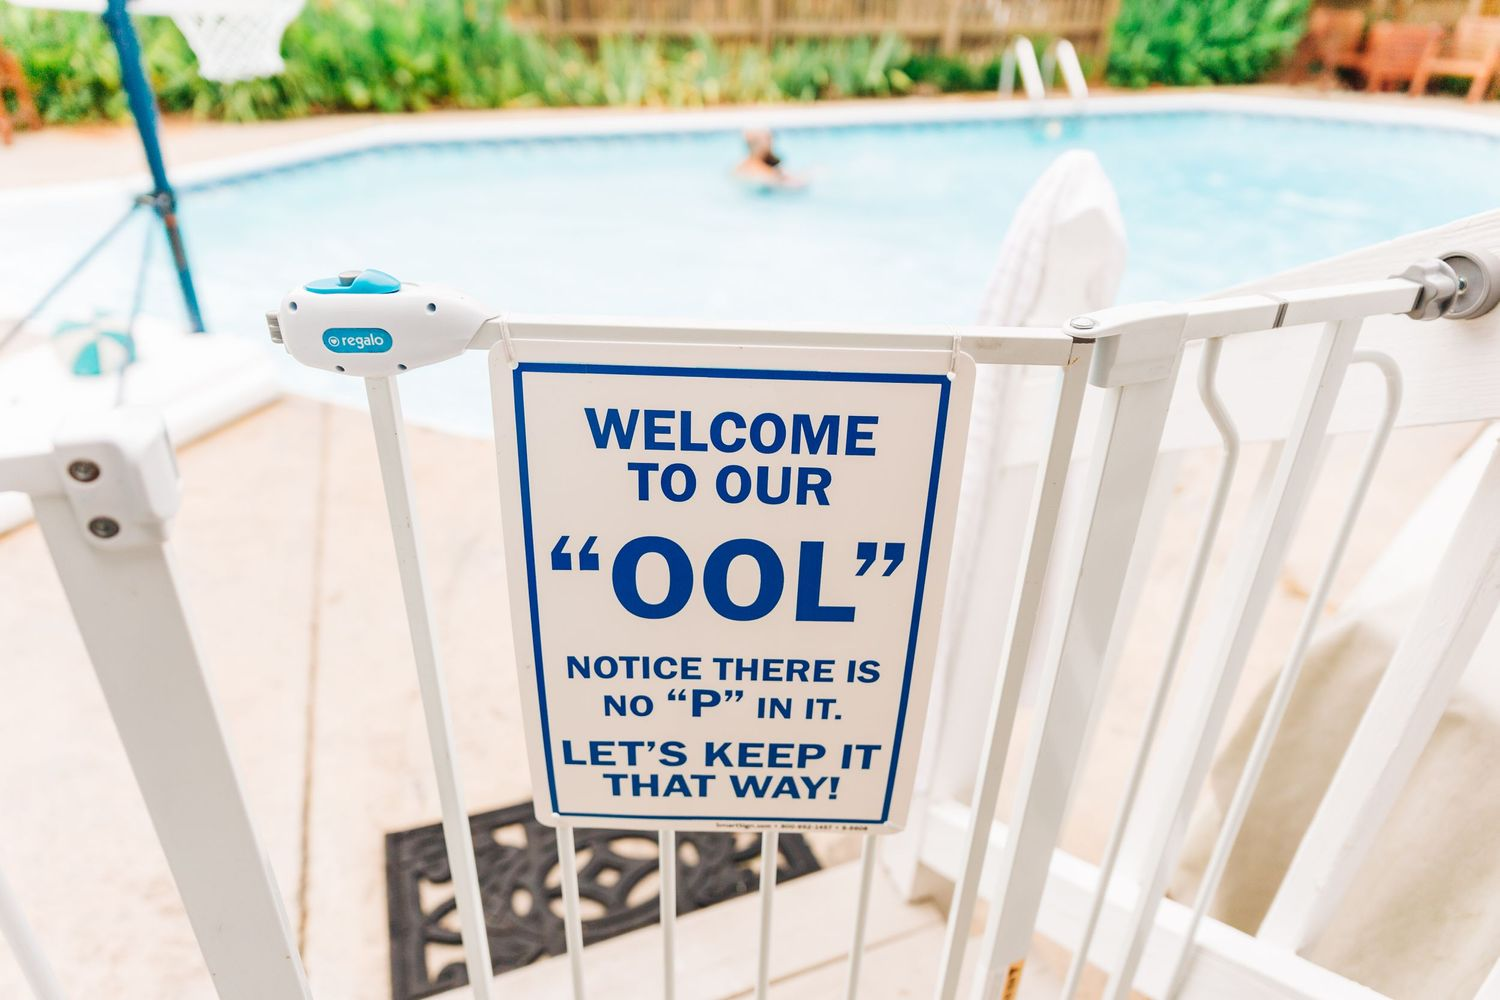 Funny pool sign in Charlotte, NC backyard